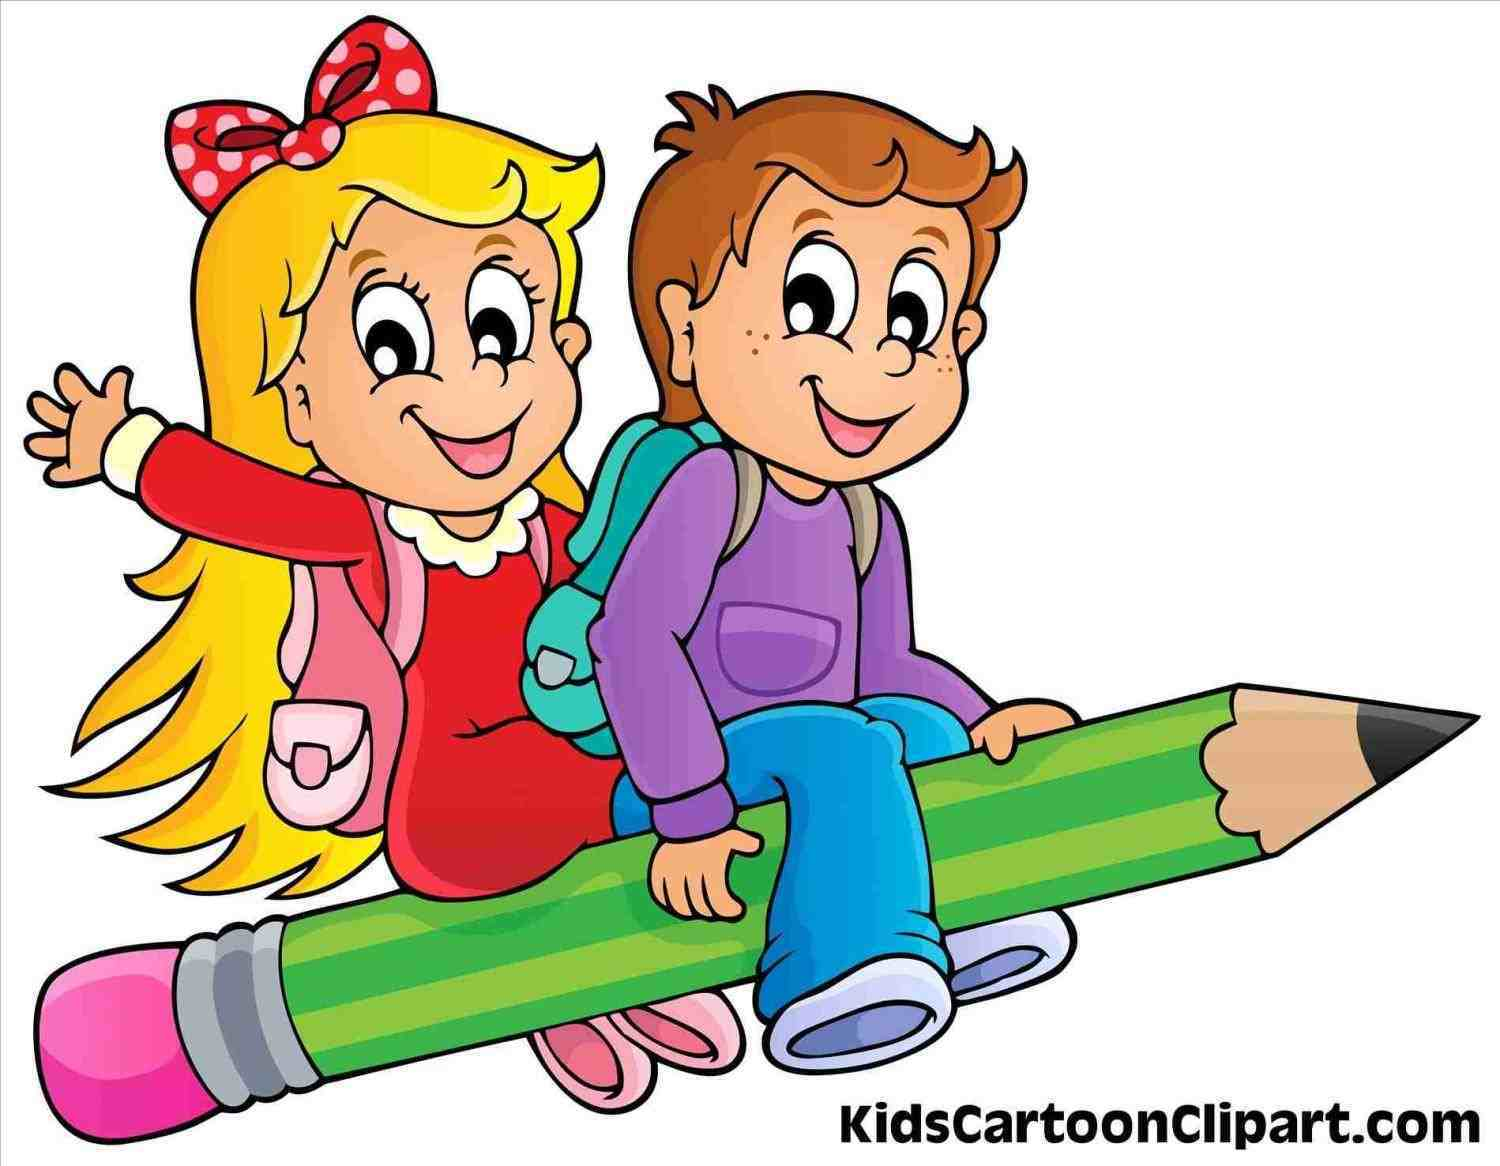 Clipart Back To School at GetDrawings.com.